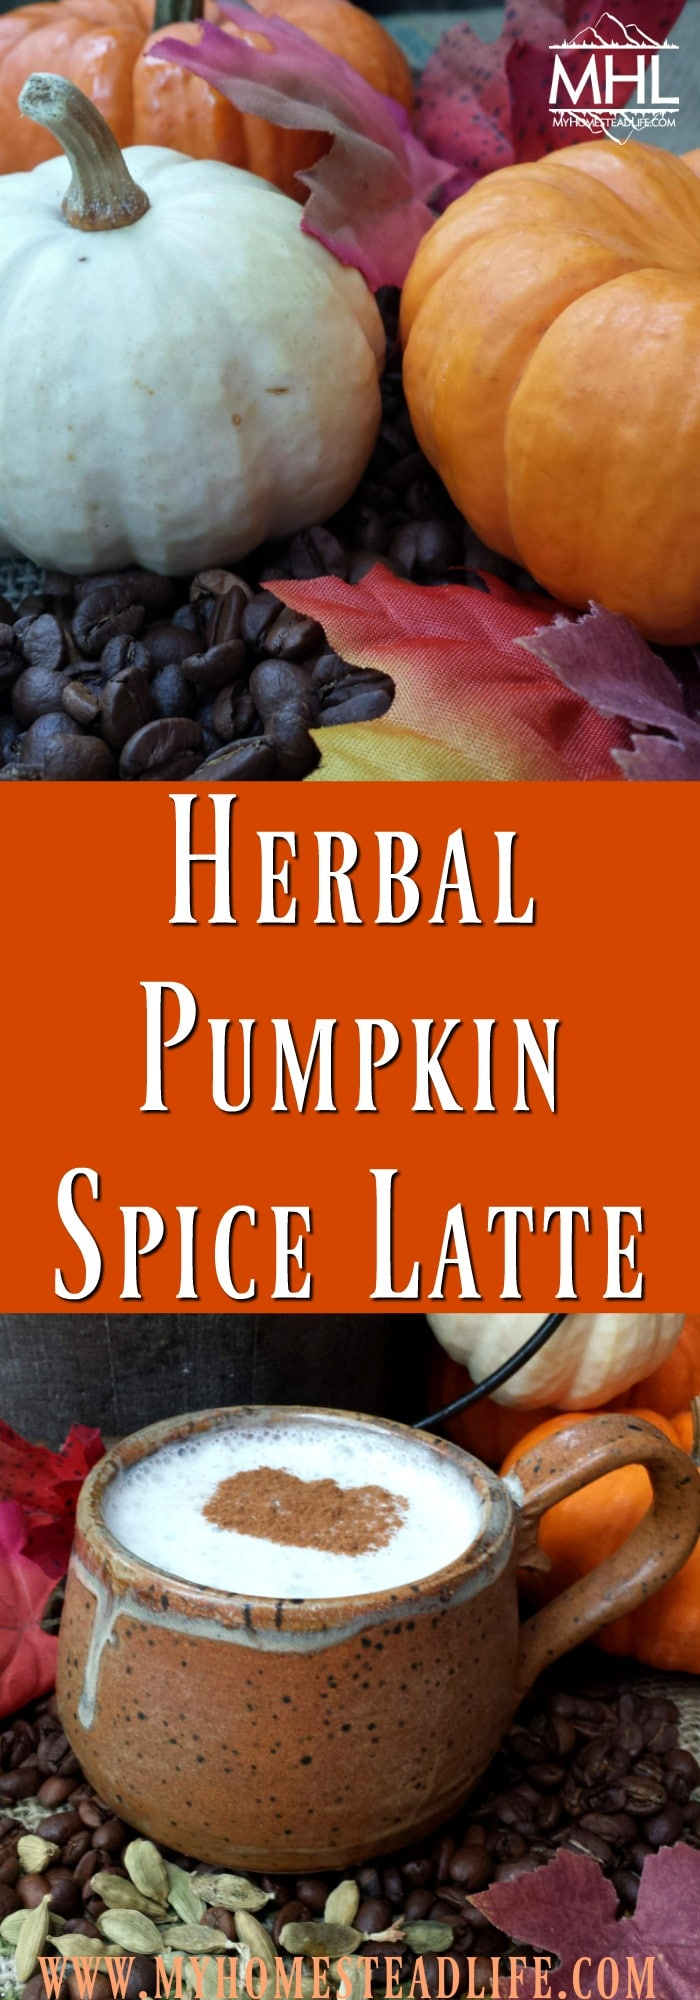 Herbal Pumpkin Spice Latte. If you love coffee and you love fall, then you'll LOVE this recipe!